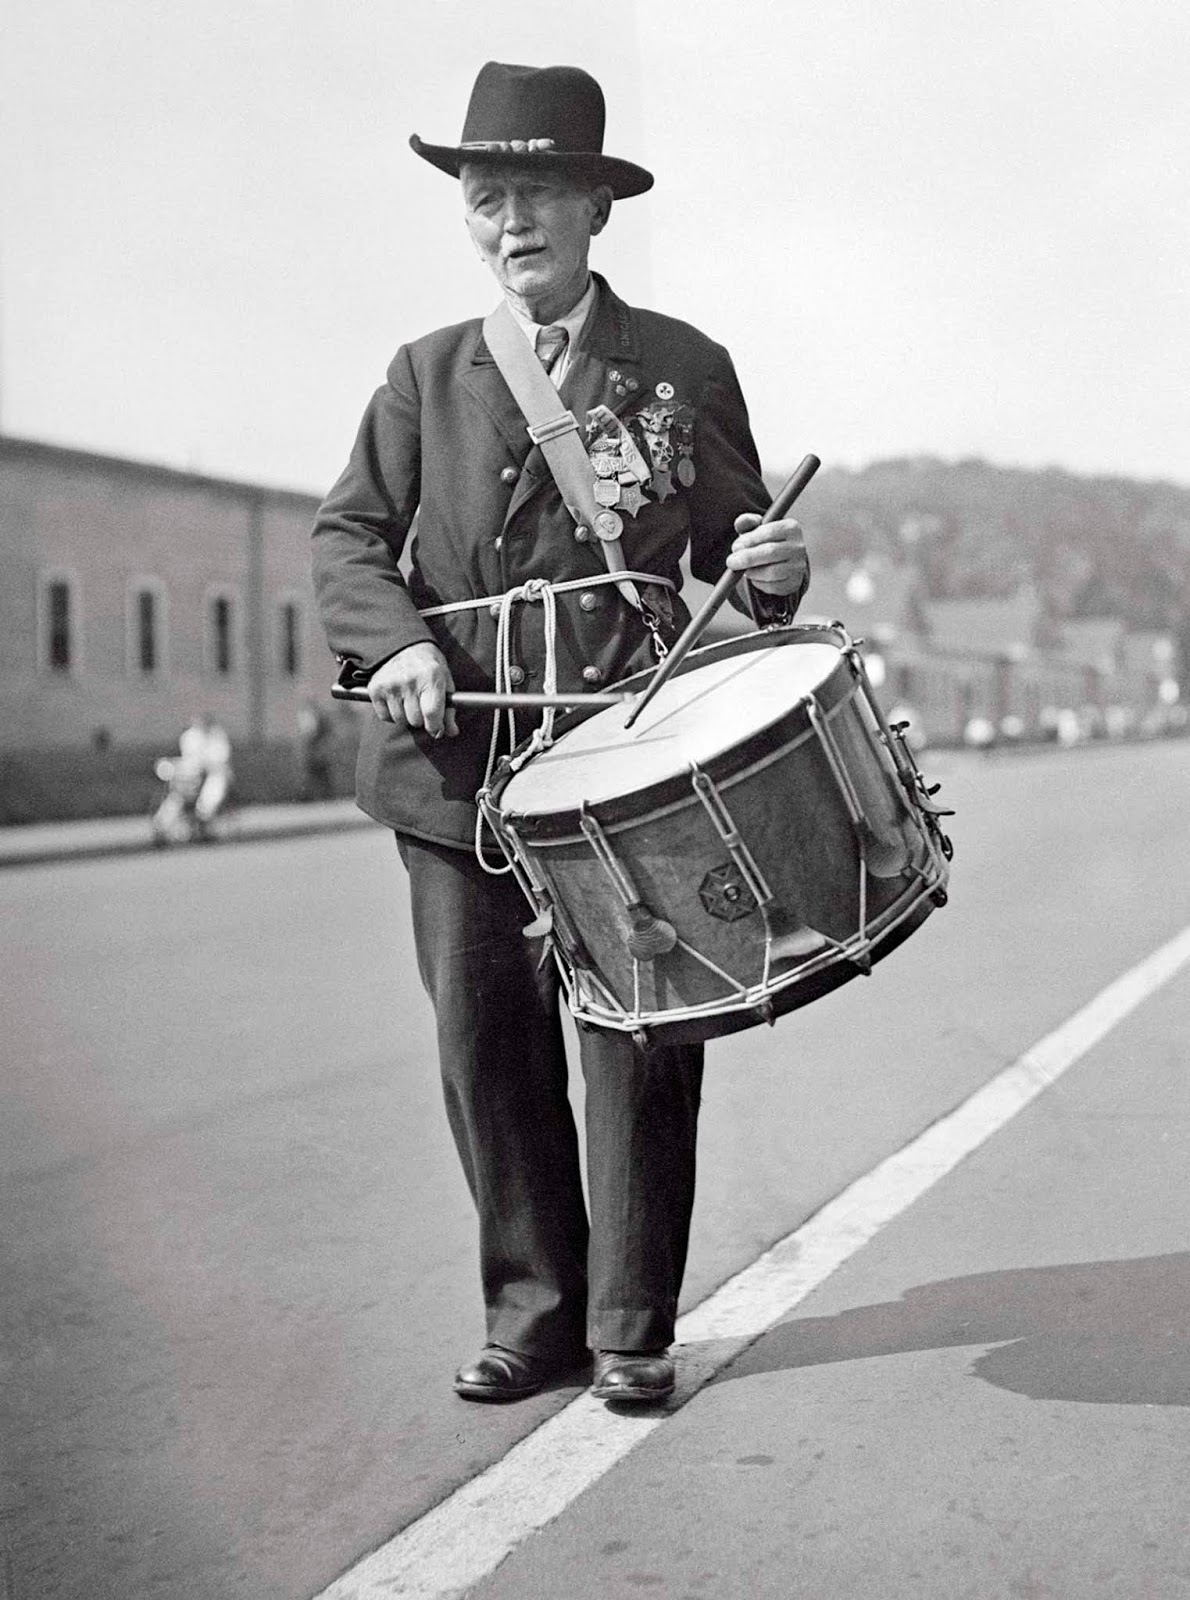 Washington, D.C. - Captain R.D. Parker, age 90, who played a drum at Lincoln's inauguration, as he took part in the final parade of the Grand Army of the Republic in Washington, D.C., closing the 70th annual encampment. The Grand Army of the Republic was an organization founded in 1866 for veterans of the Civil War. 1936.